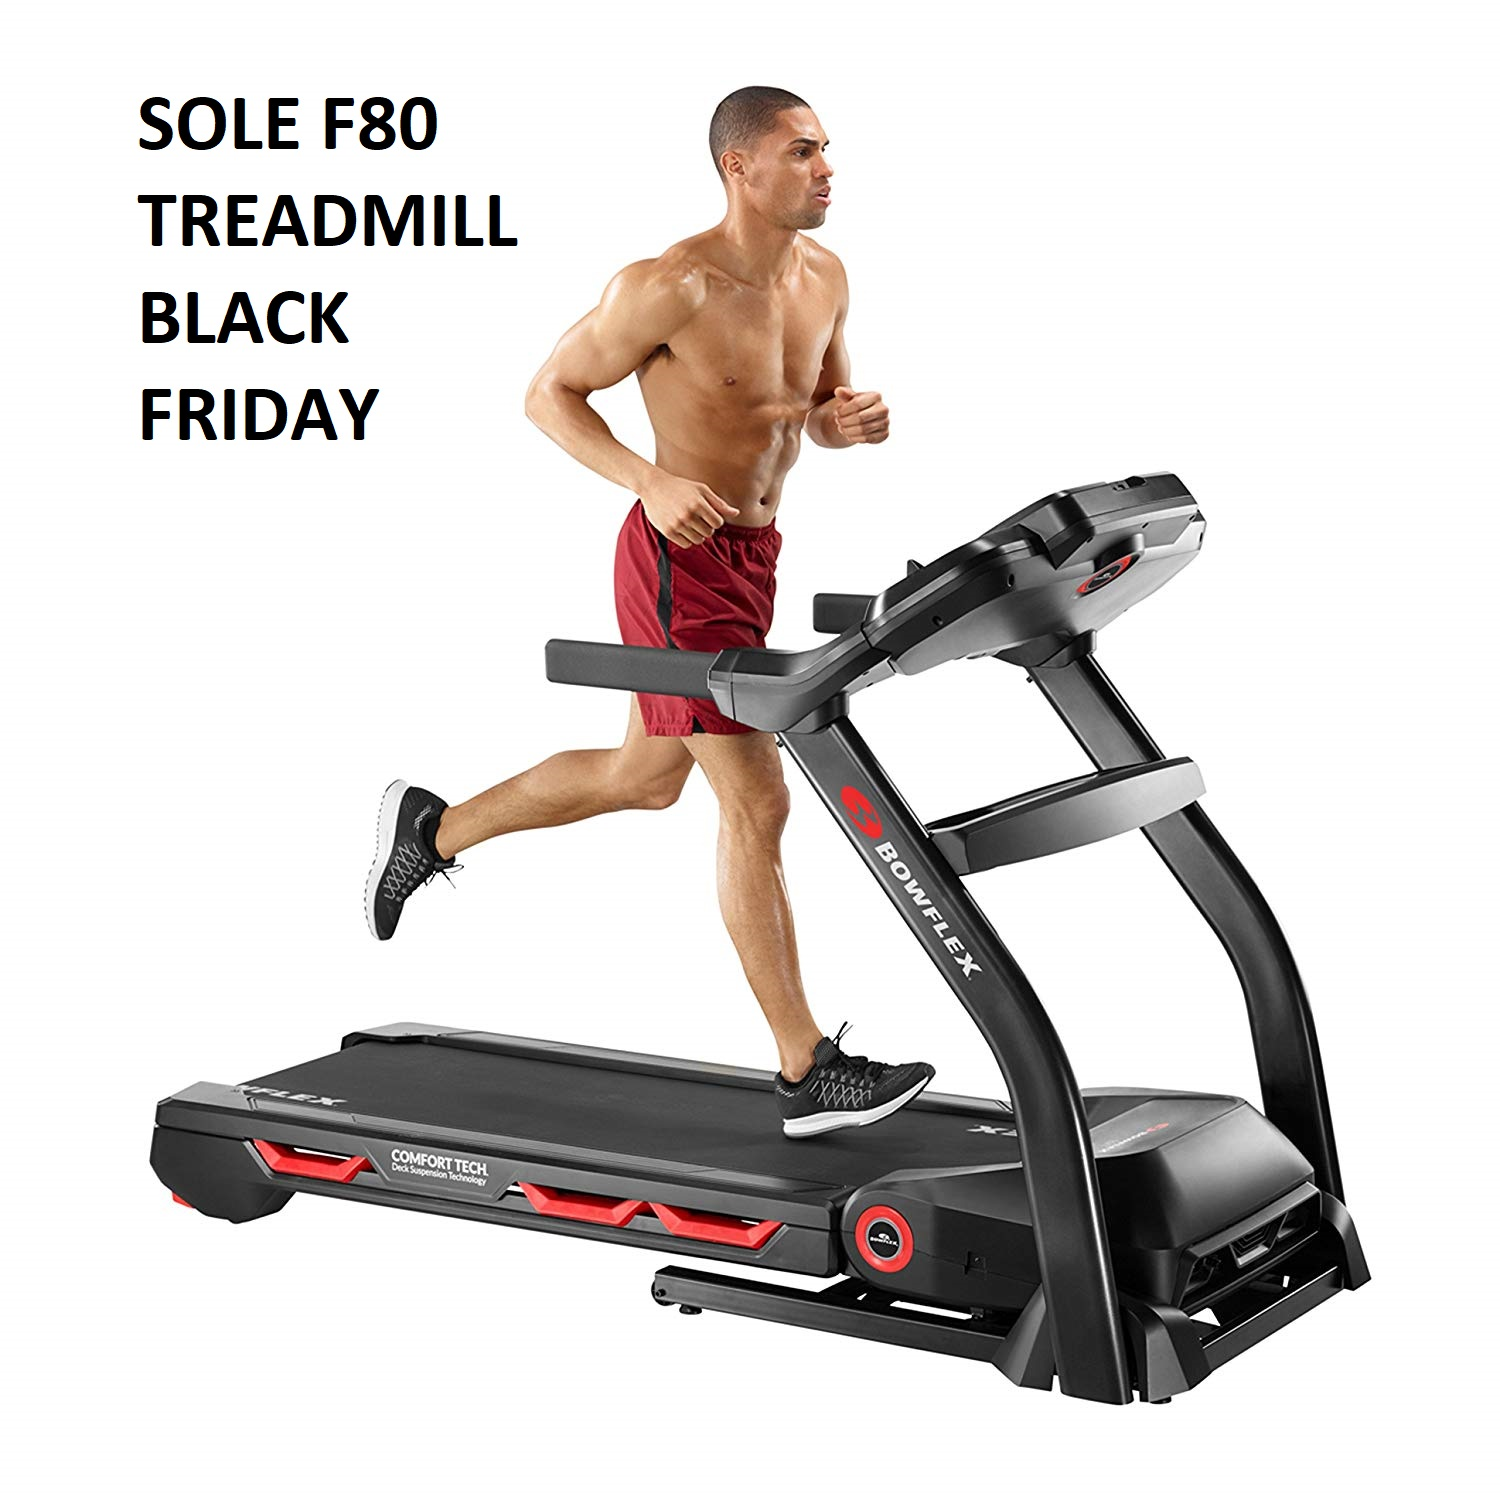 SOLE F80 TREADMILL BLACK FRIDAY